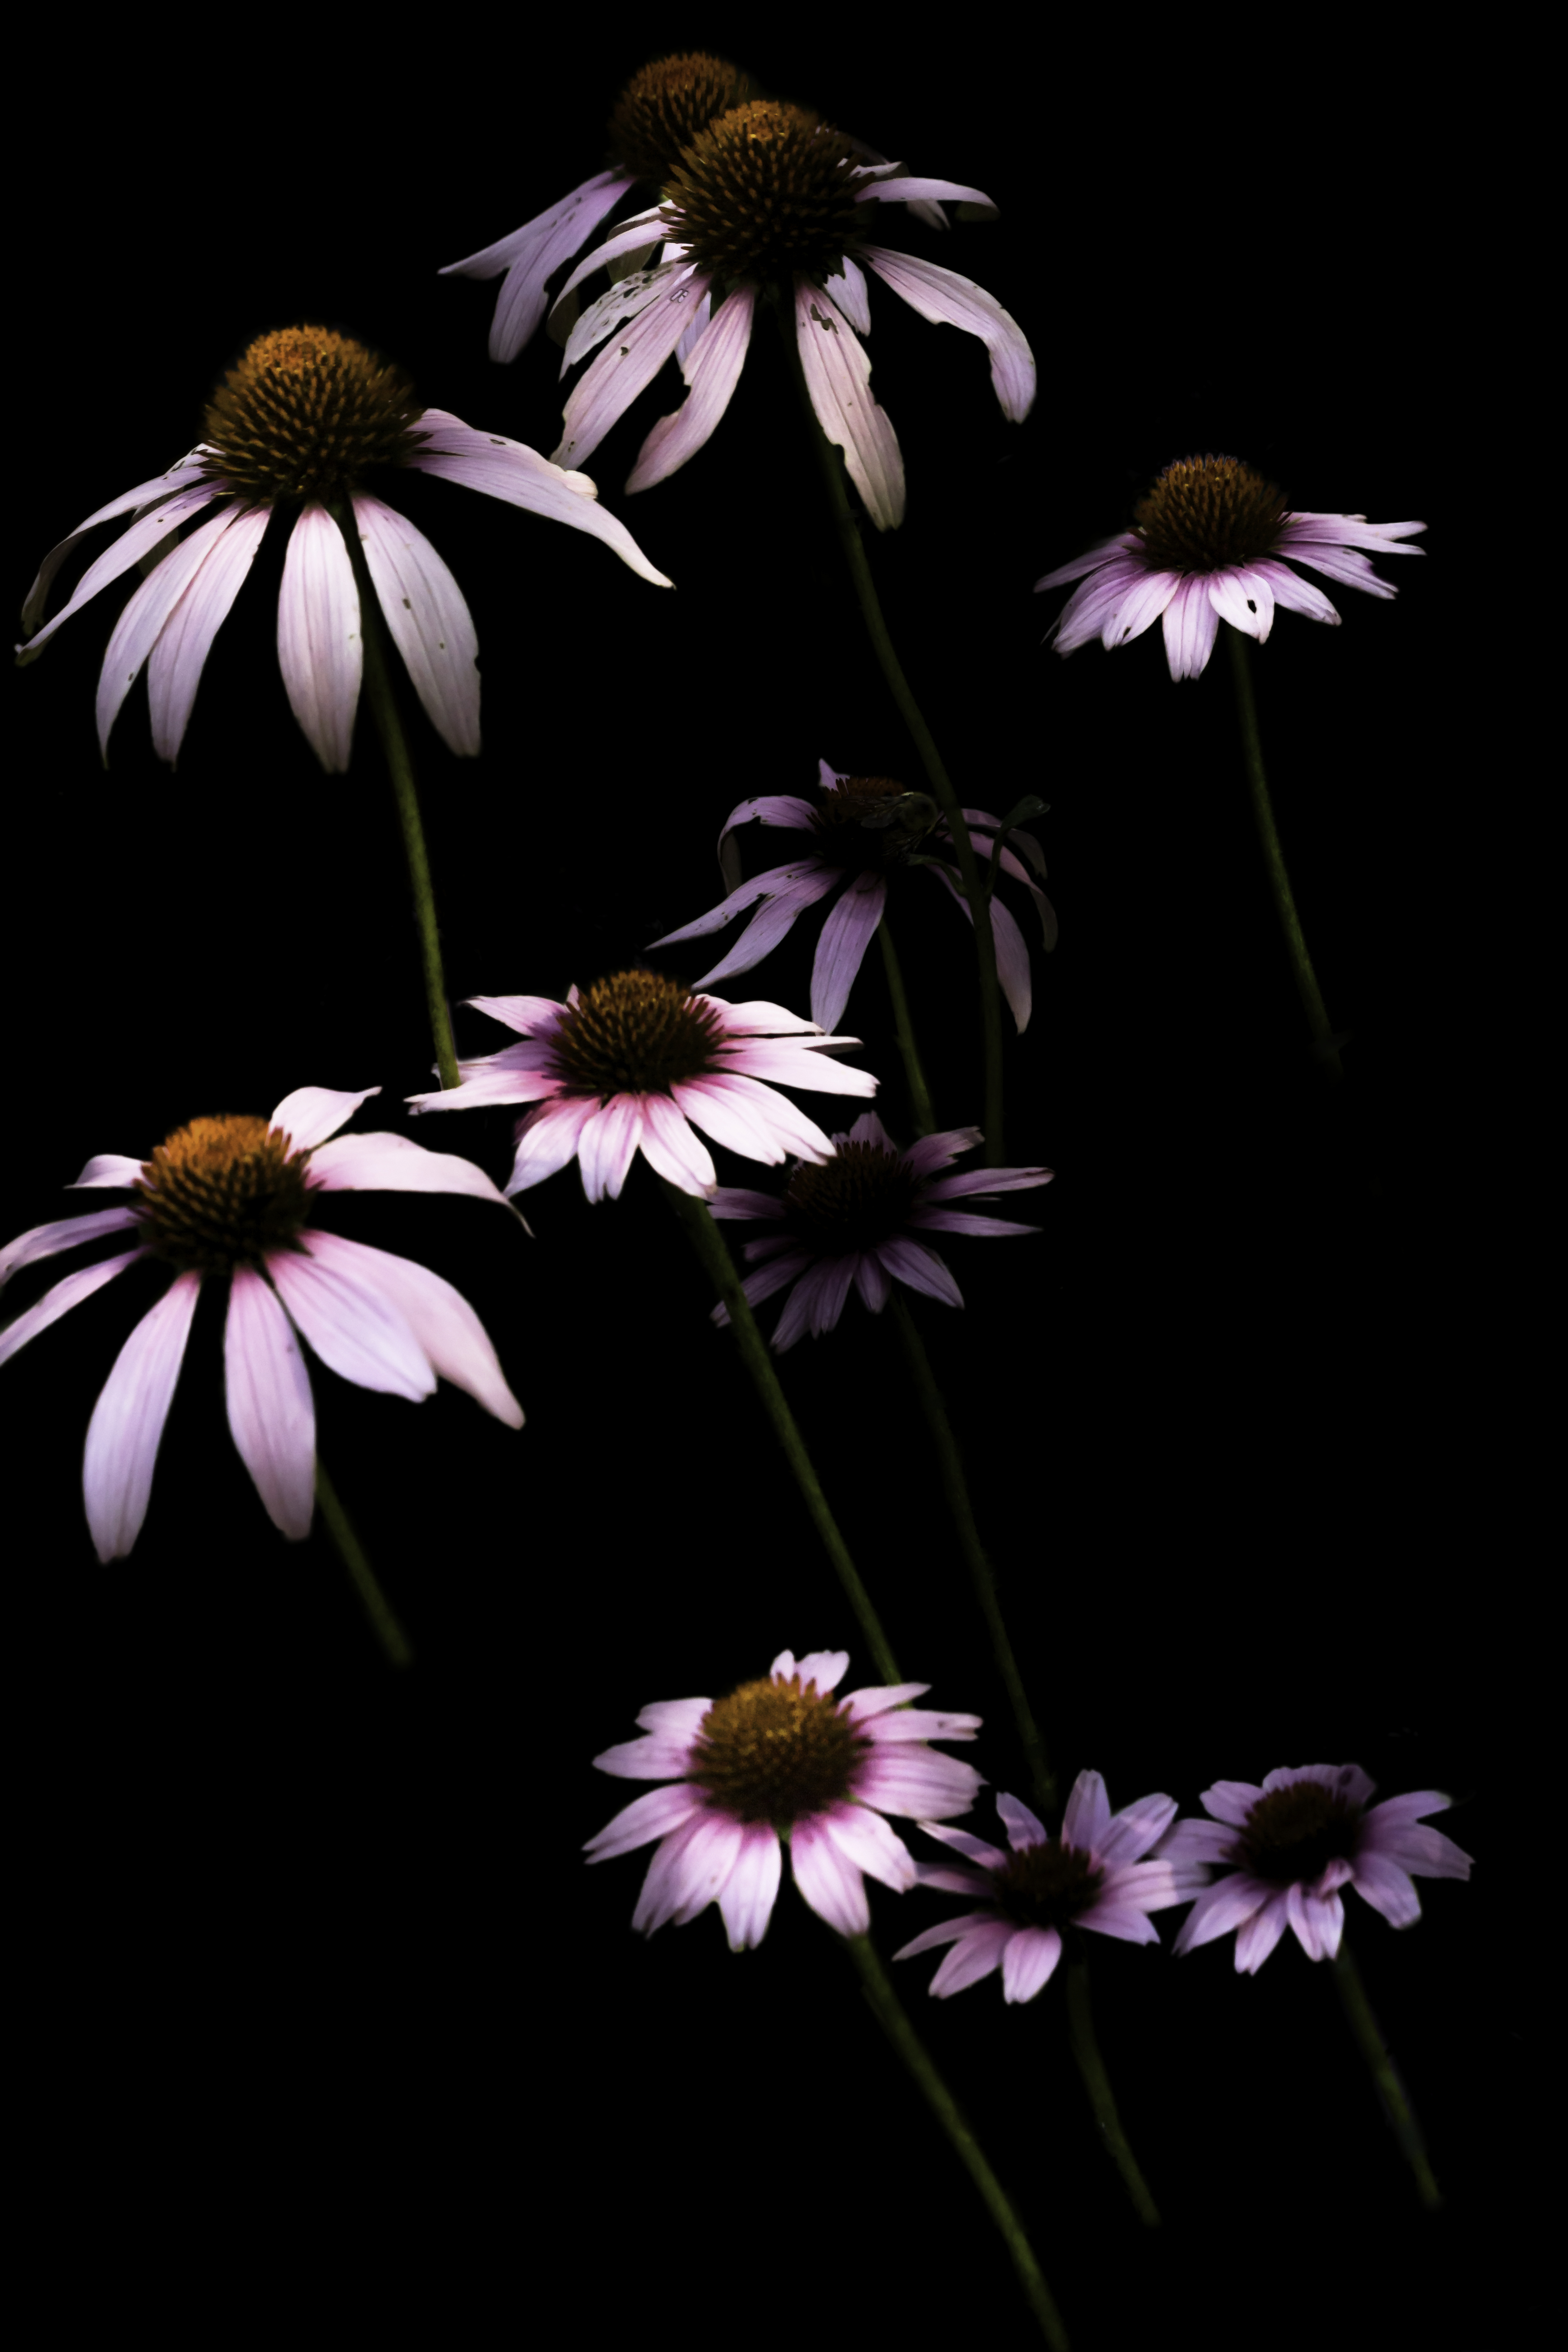 120817 download wallpaper Flowers, Chamomile, Camomile, Petals, Flower screensavers and pictures for free